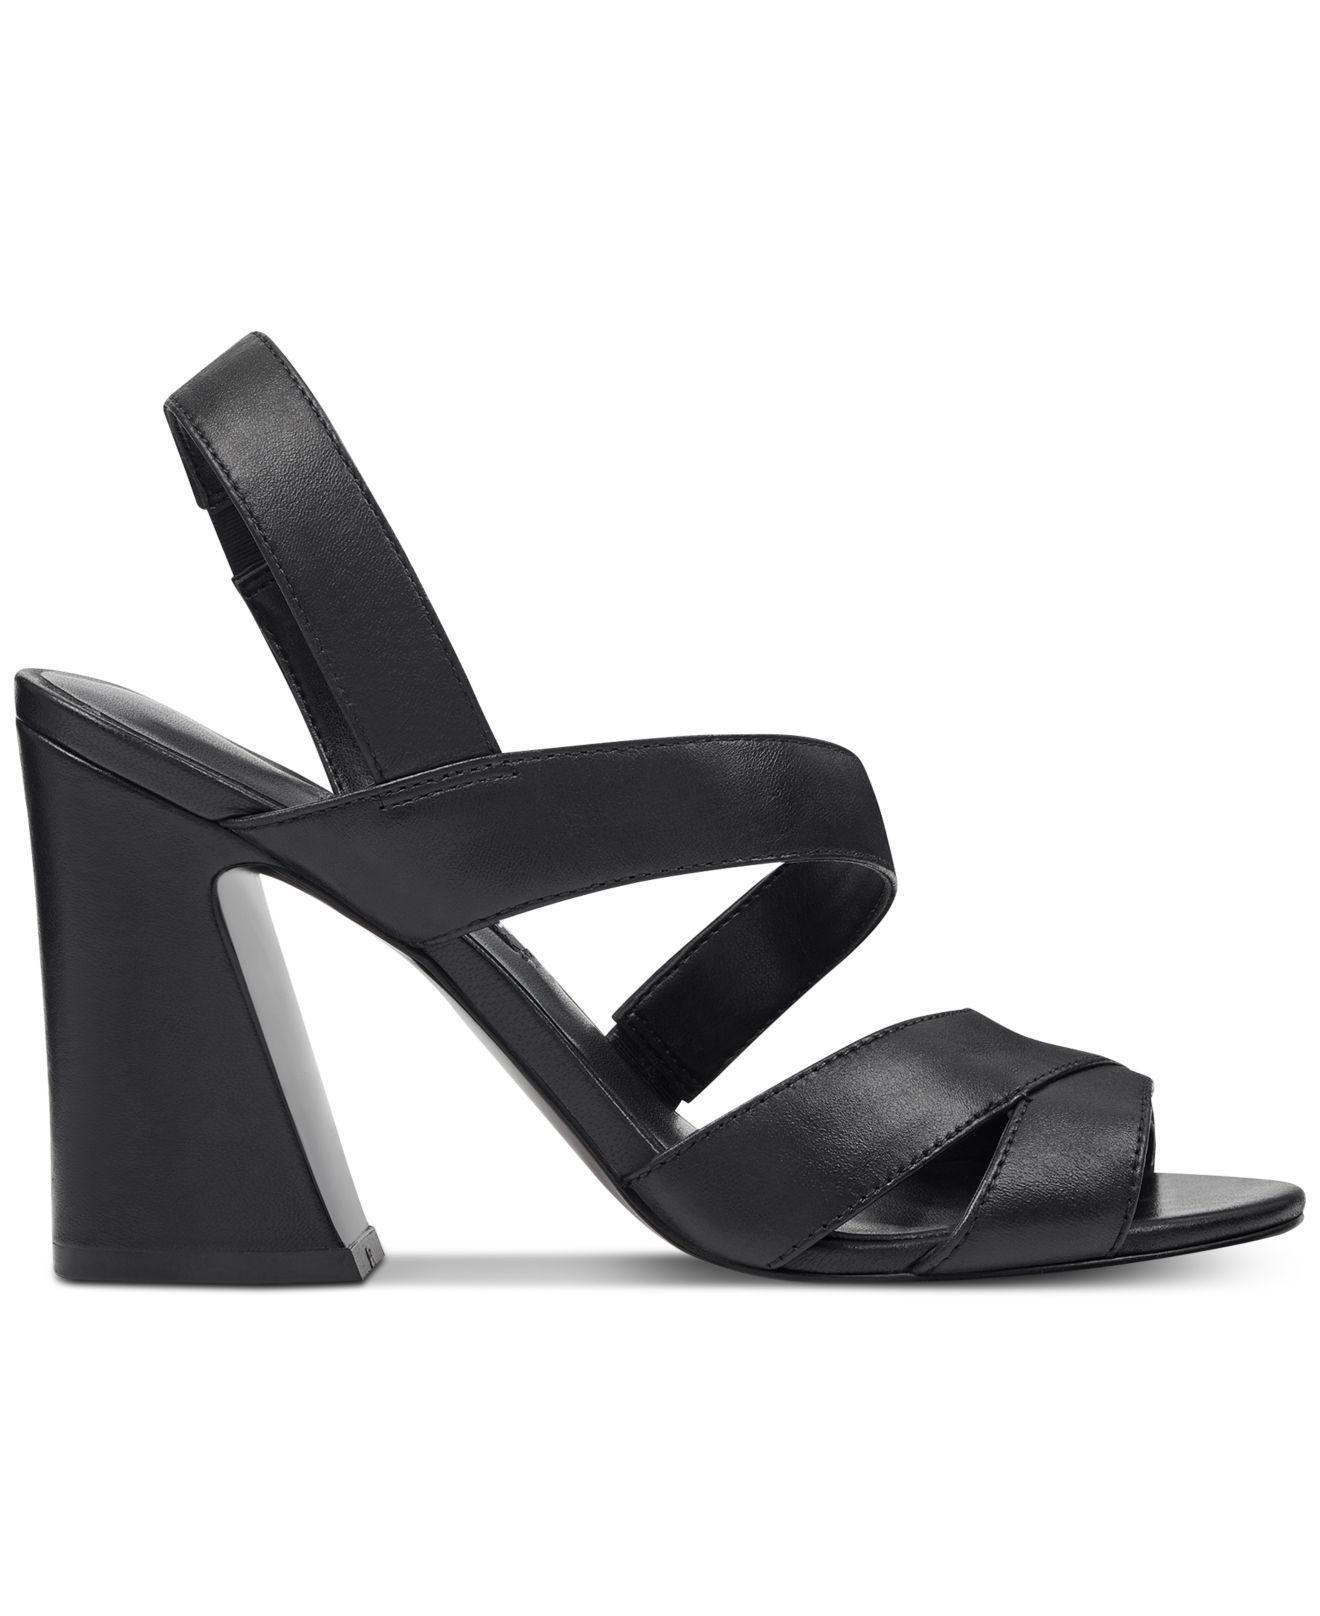 cec407d4899 Women's Black Nohemi Flare Heel Sandals